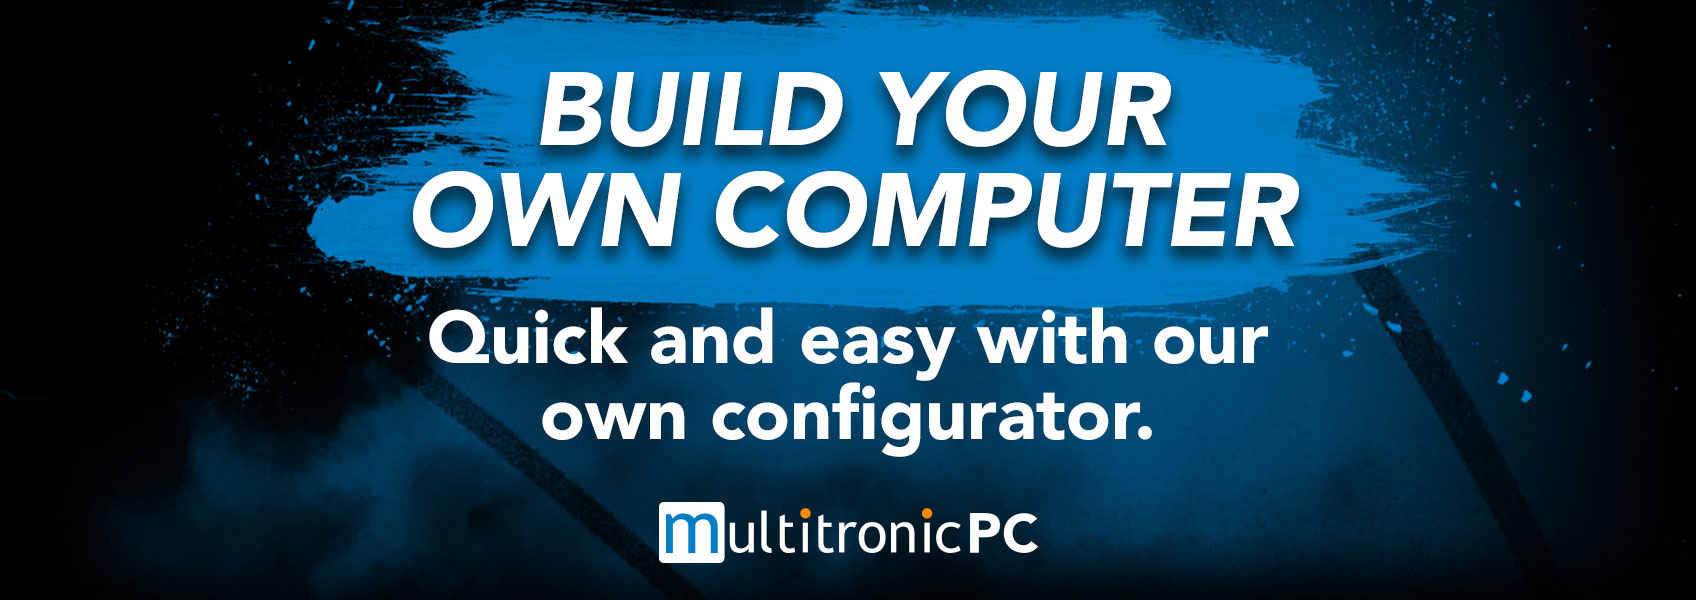 Multitronic PC